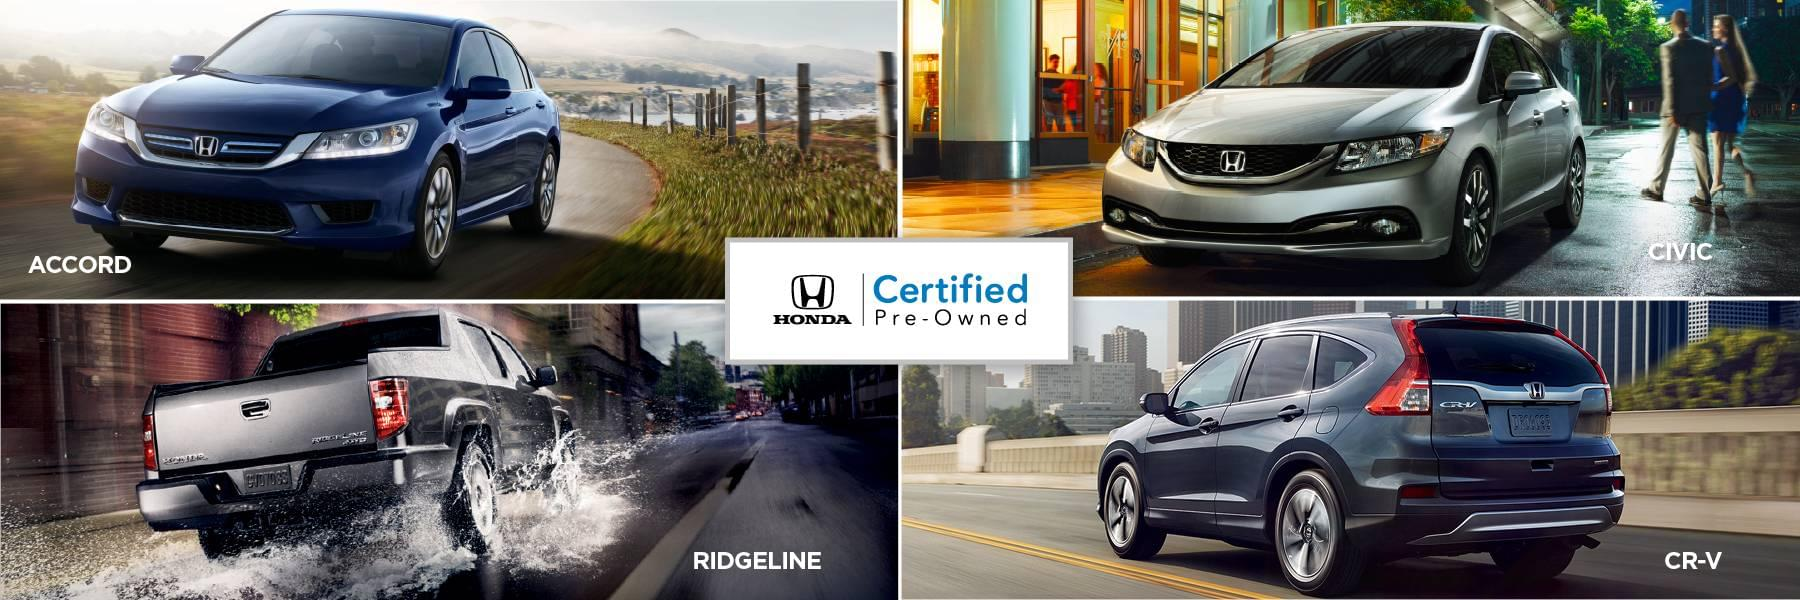 North Country Honda Dealers Certified Pre-Owned Vehicles